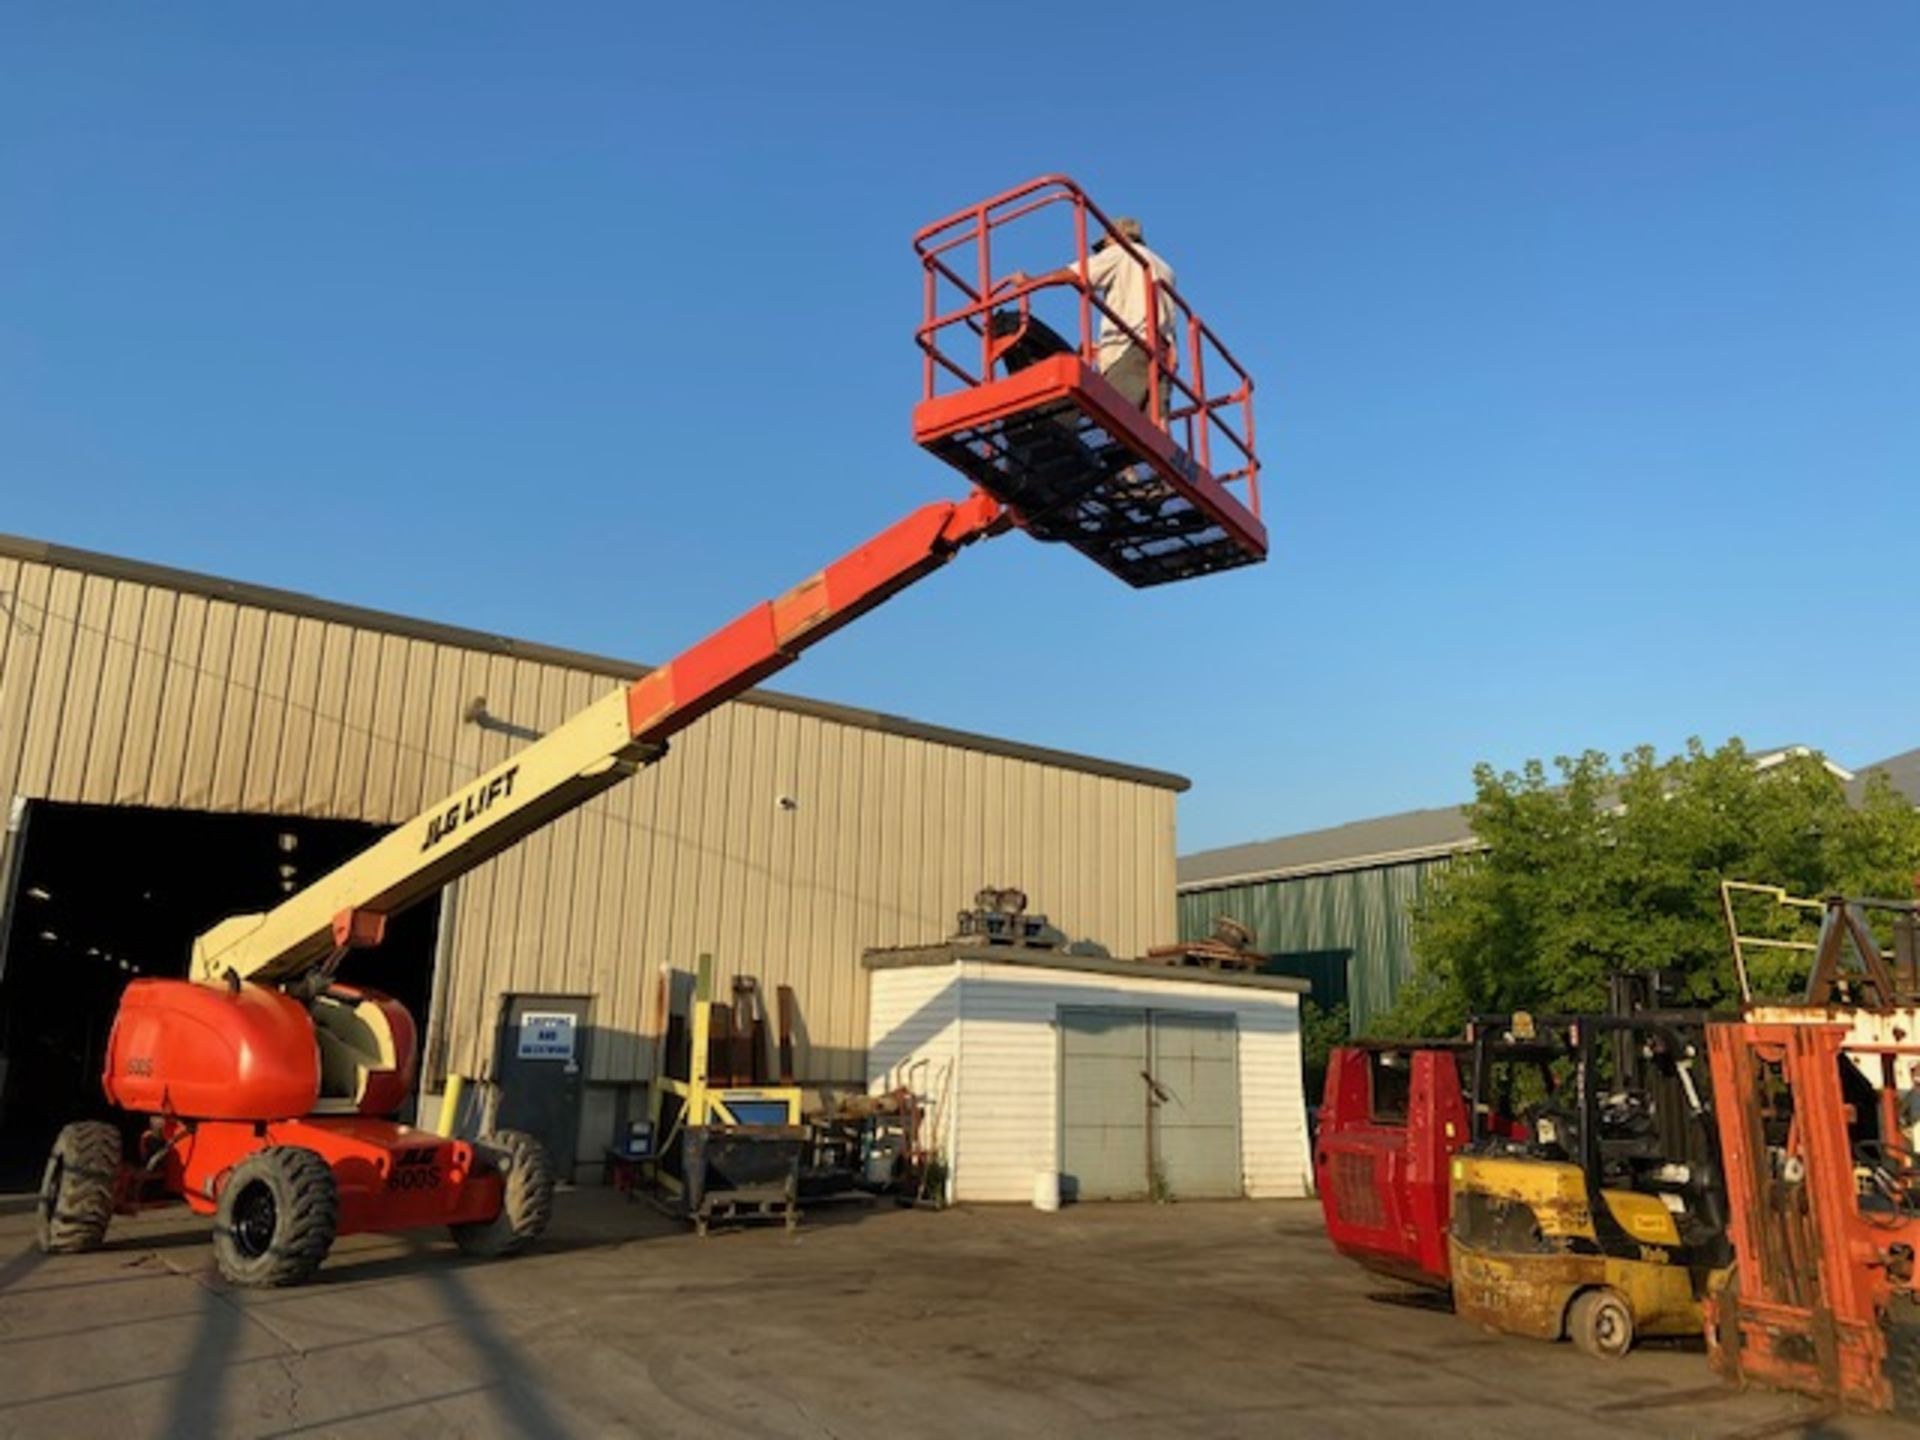 Lot 3 - MINT JLG model 600S Boom Lift with 60' platform height with 4x4 NICE MACHINE with LOW hours